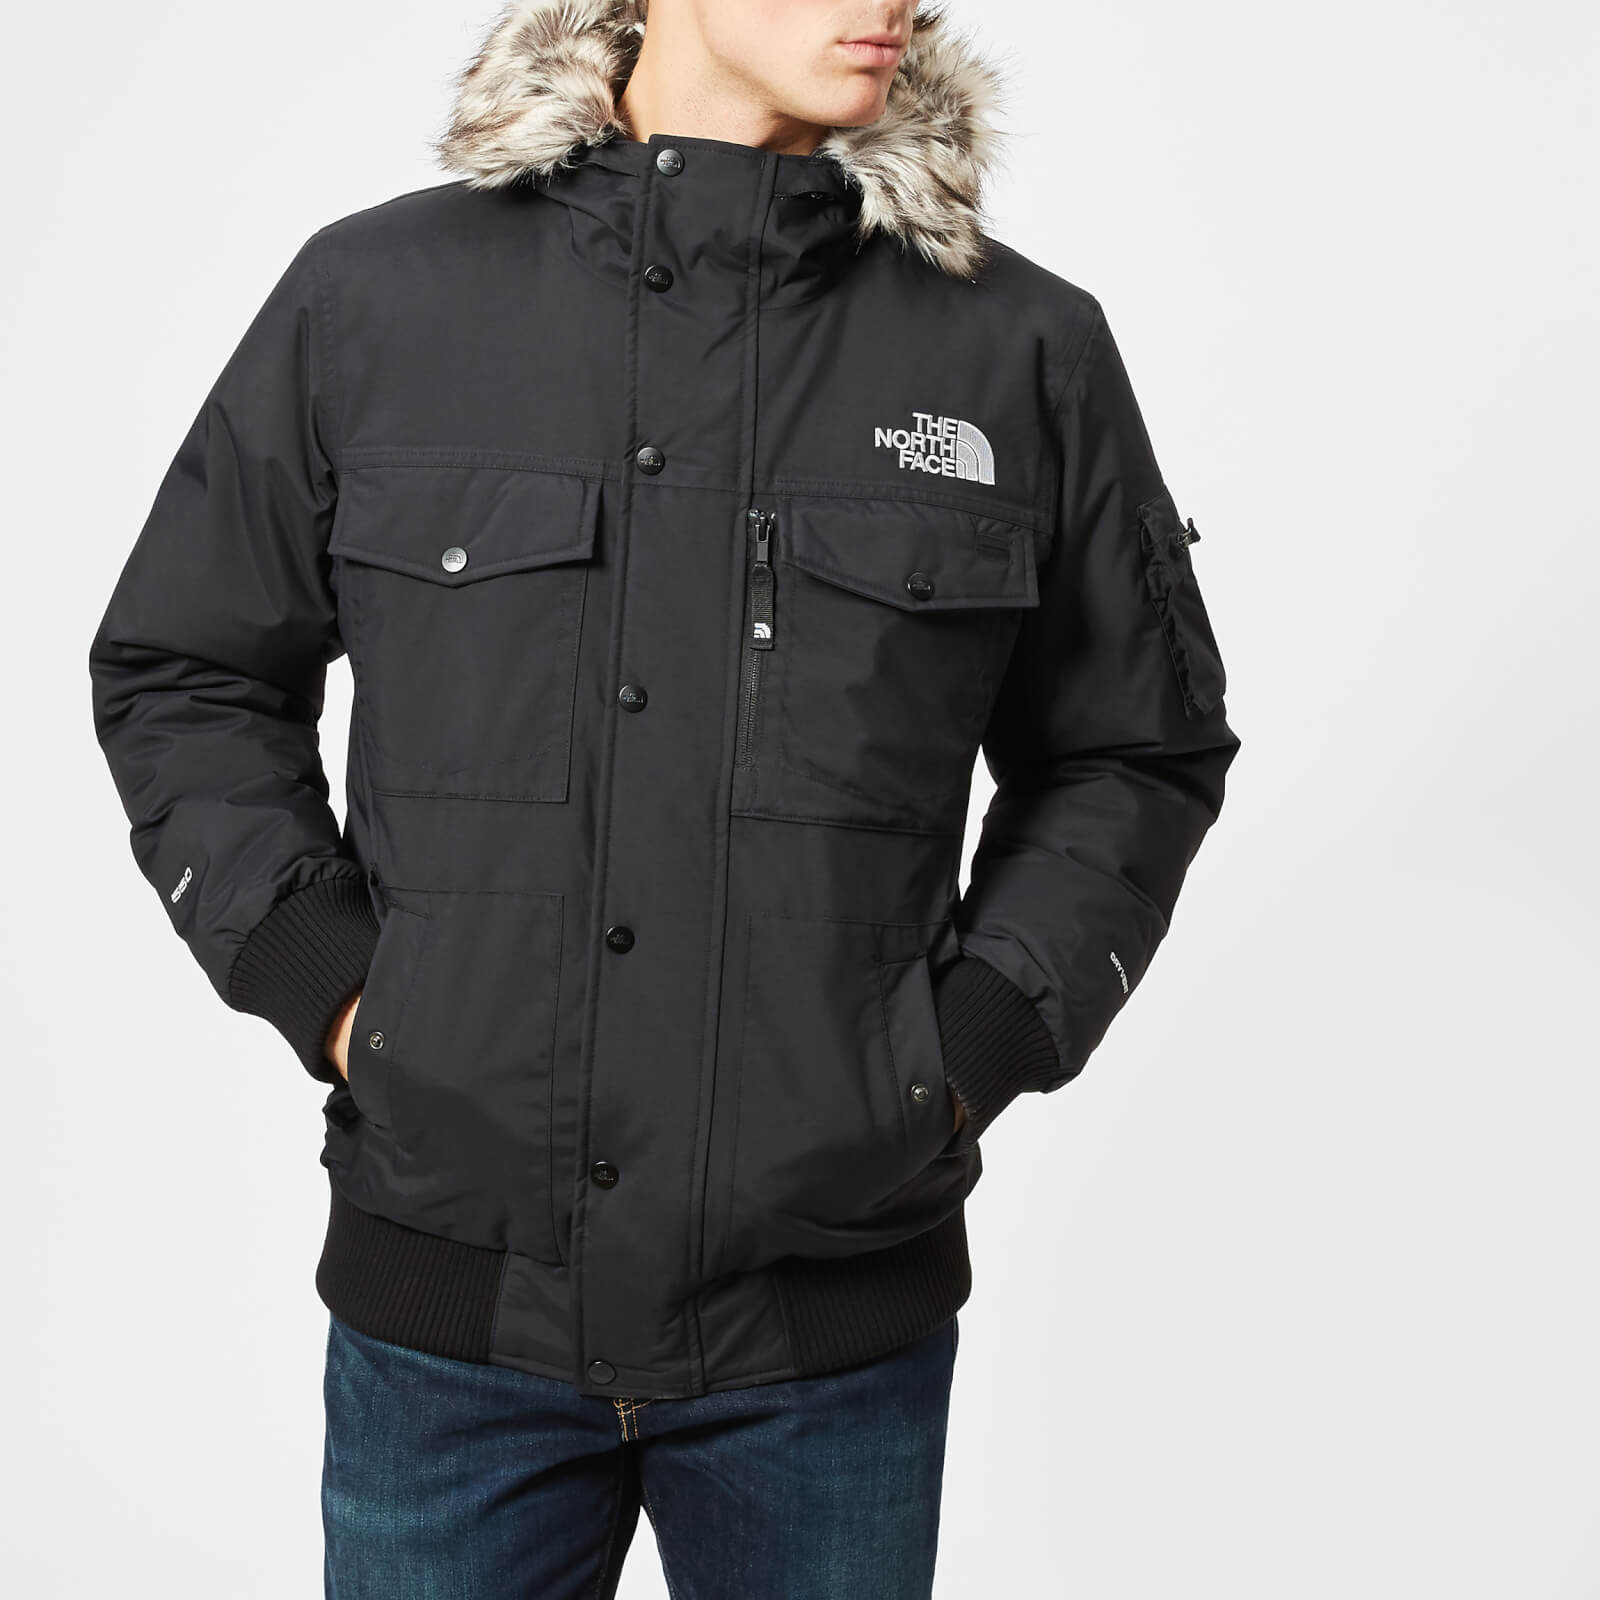 acccb145f67f The North Face Men s Gotham Jacket - TNF Black Clothing